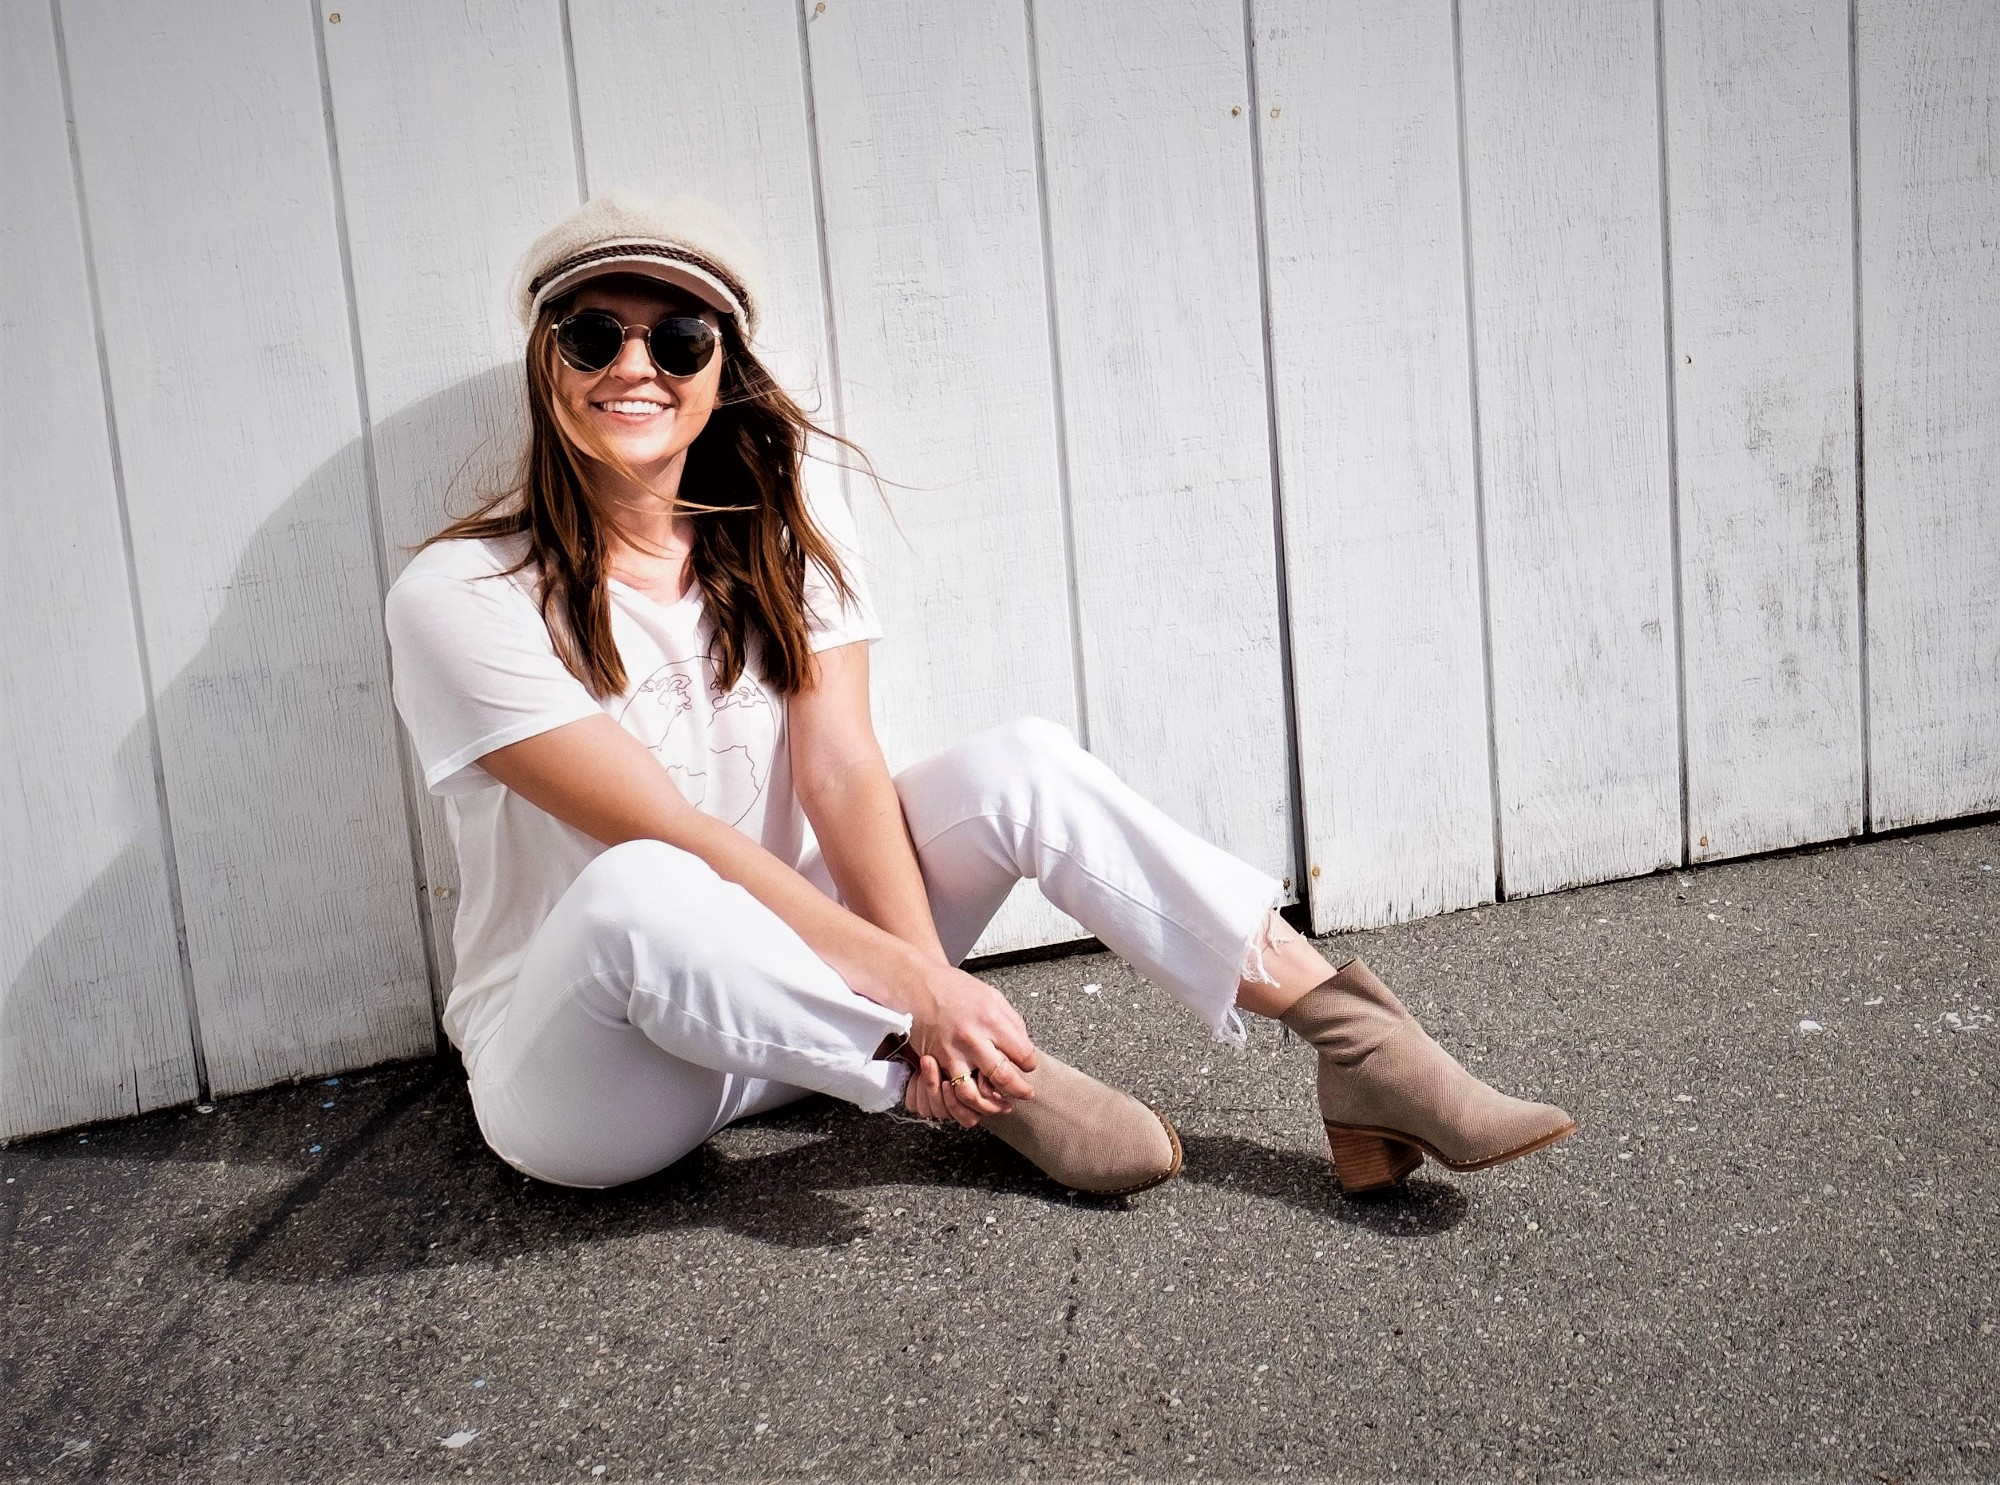 smiling girl with long brown hair wearing sunglasses white top and pants and tan boots and hat sitting on ground leaning against white board wall